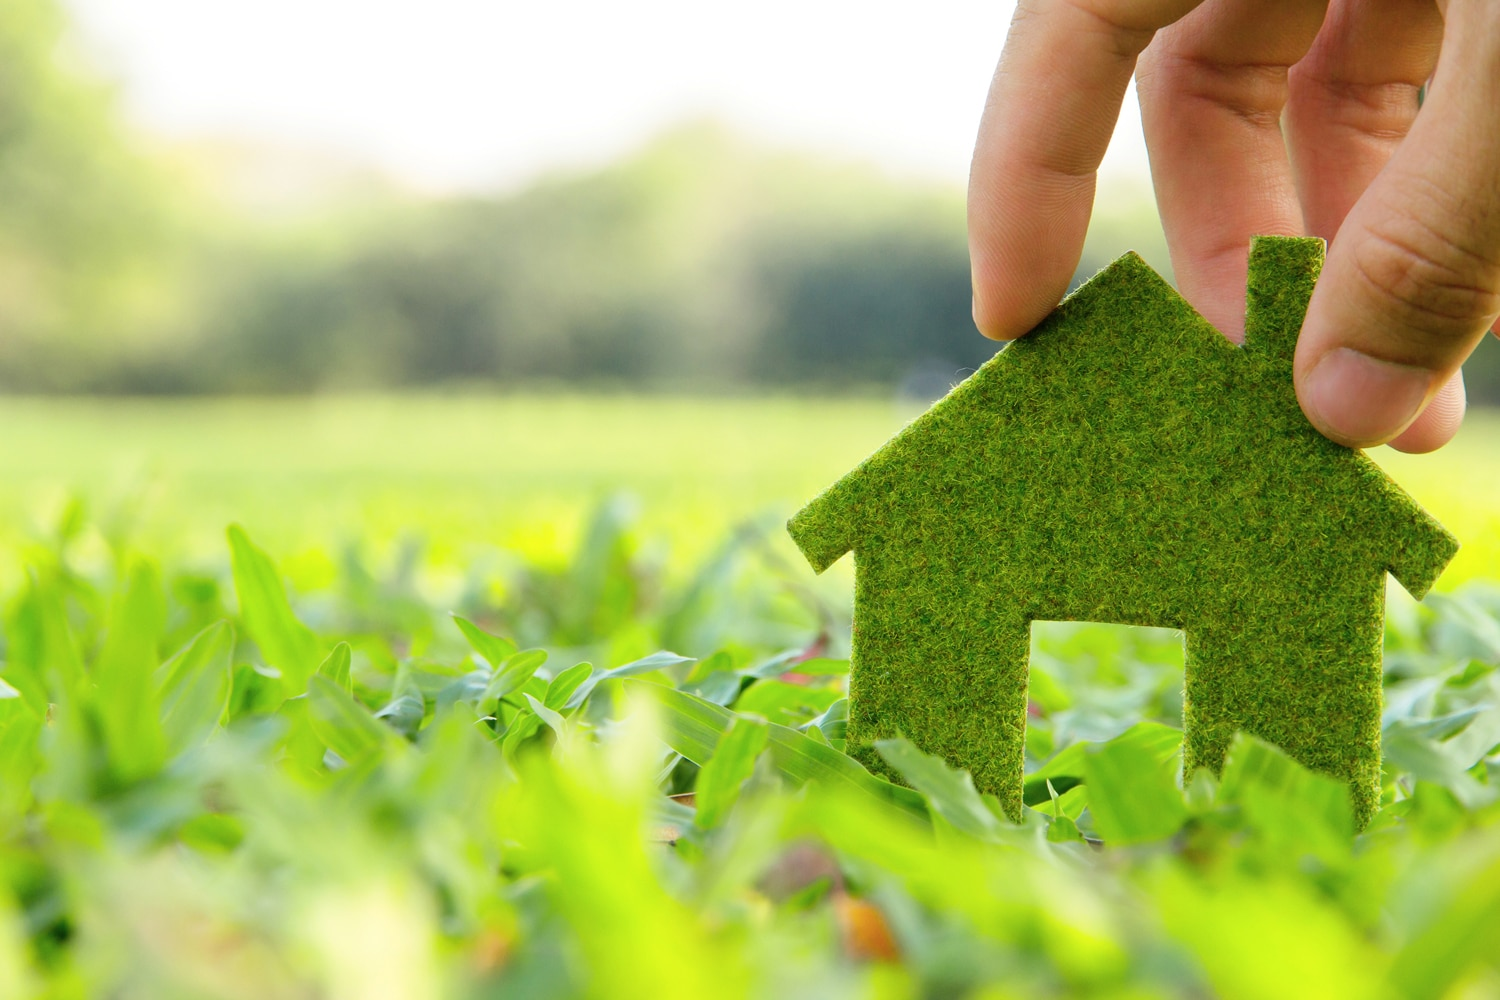 the long term benefits of eco friendly buildings The effect of indoor environmental quality (ieq) in office buildings on employee health, well-being, and productivity is an important topic in occupational health and public health research and practice.